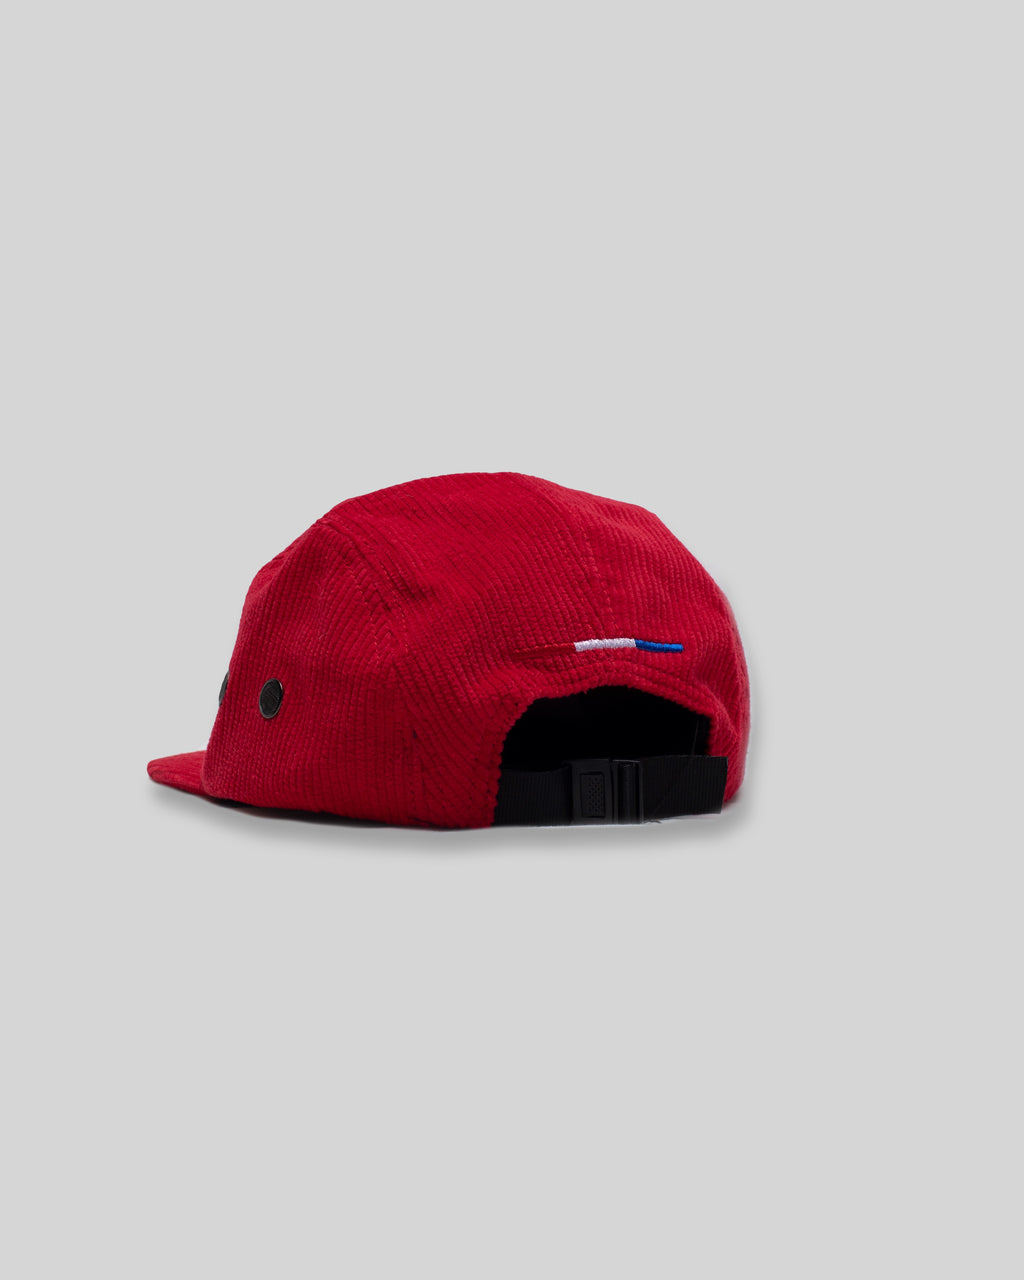 CleanDirt 5-Panel Corduroy Cap